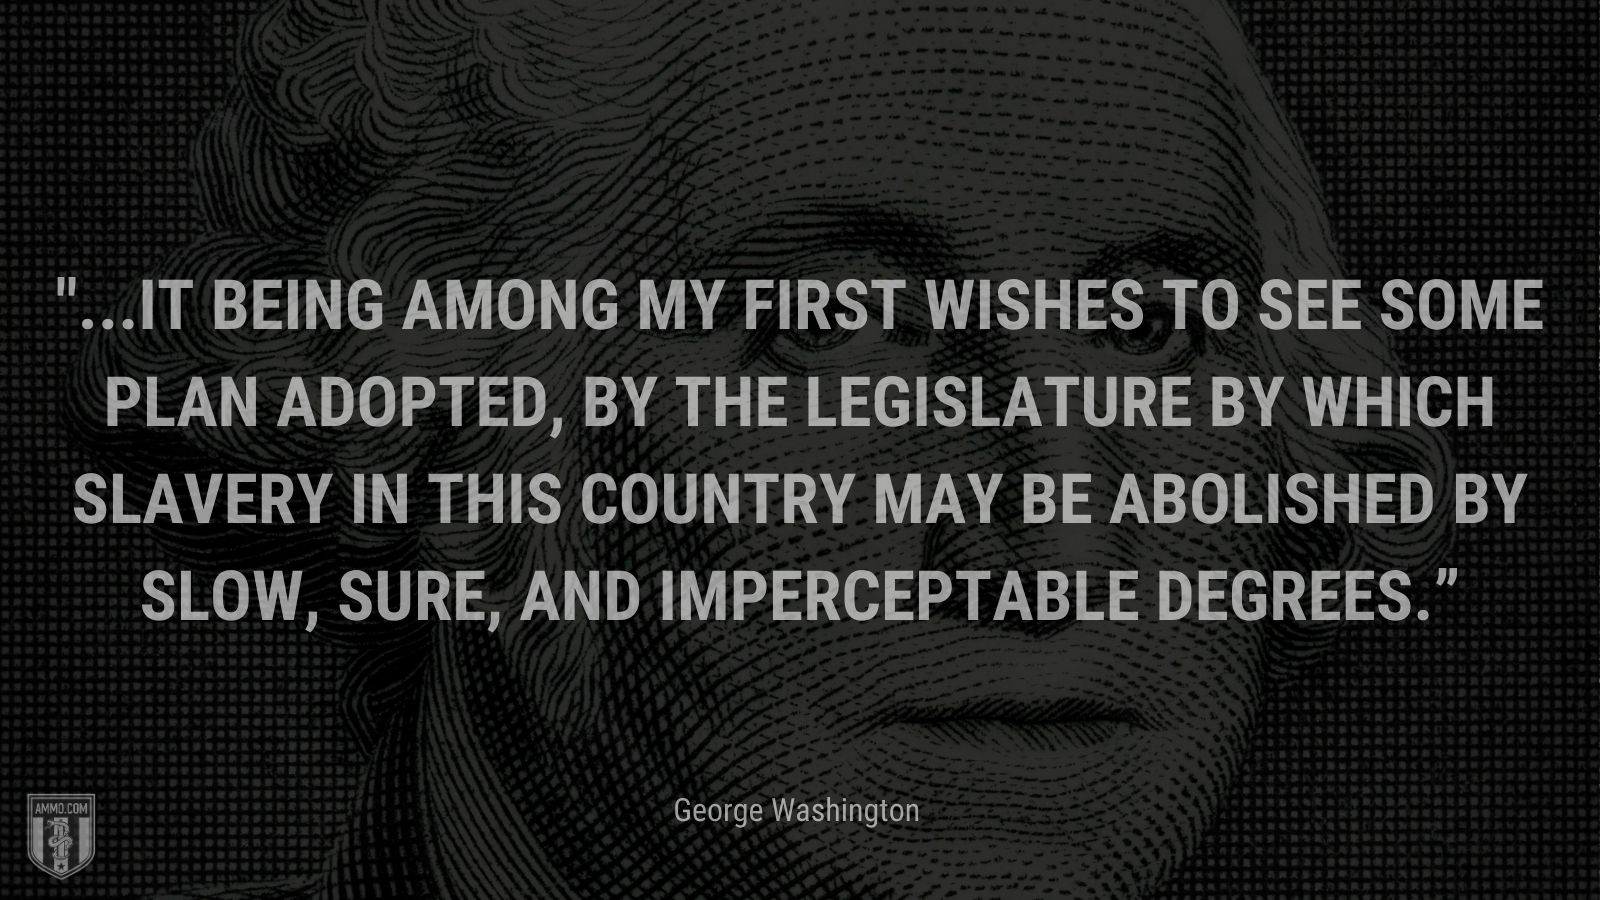 """""""...it being among my first wishes to see some plan adopted, by the legislature by which slavery in this Country may be abolished by slow, sure, and imperceptable degrees."""" - George Washington"""